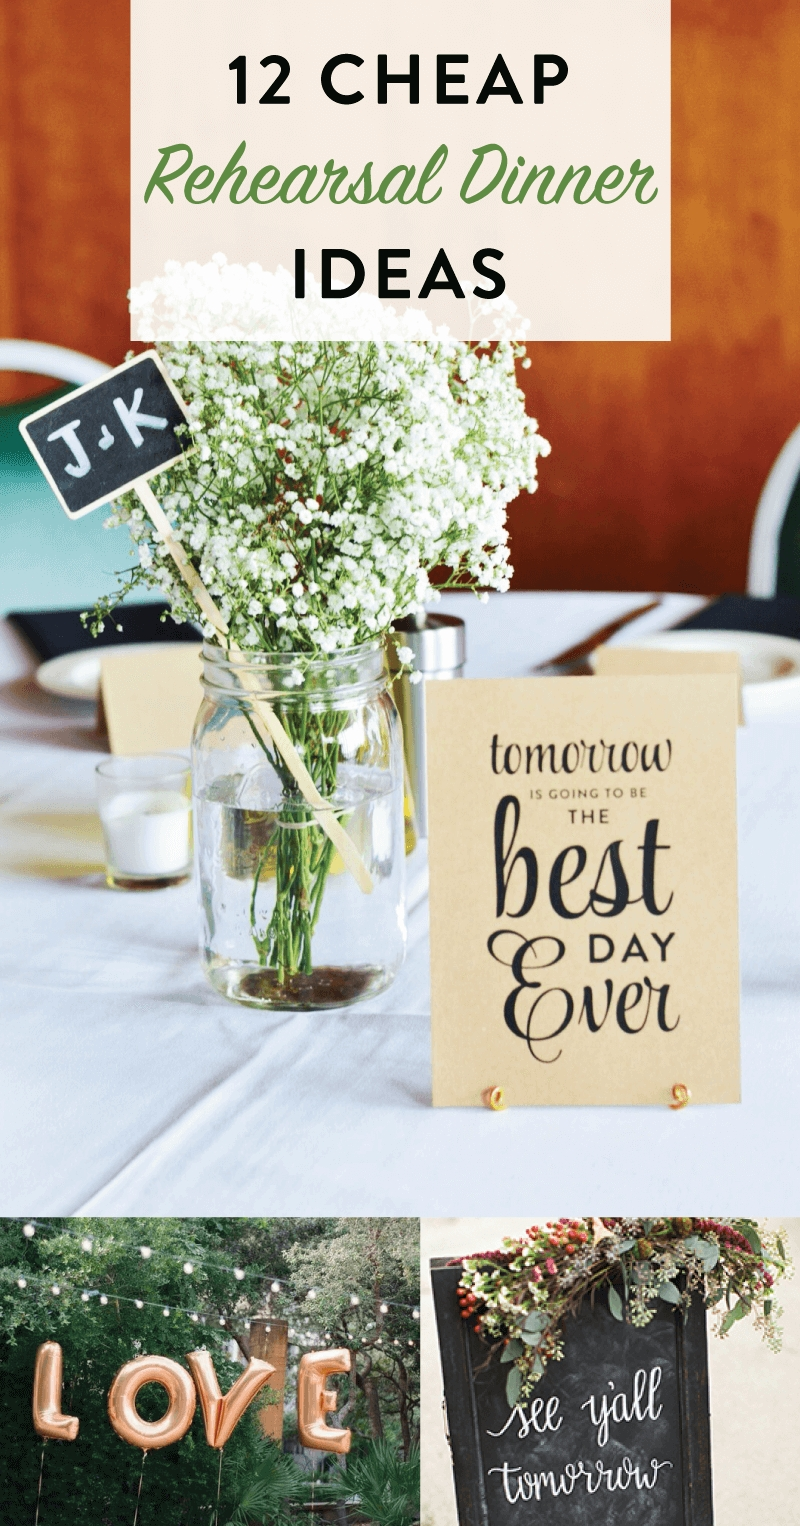 10 Unique Rehearsal Dinner Ideas On A Budget 12 cheap rehearsal dinner ideas for the modern bride on love the day 1